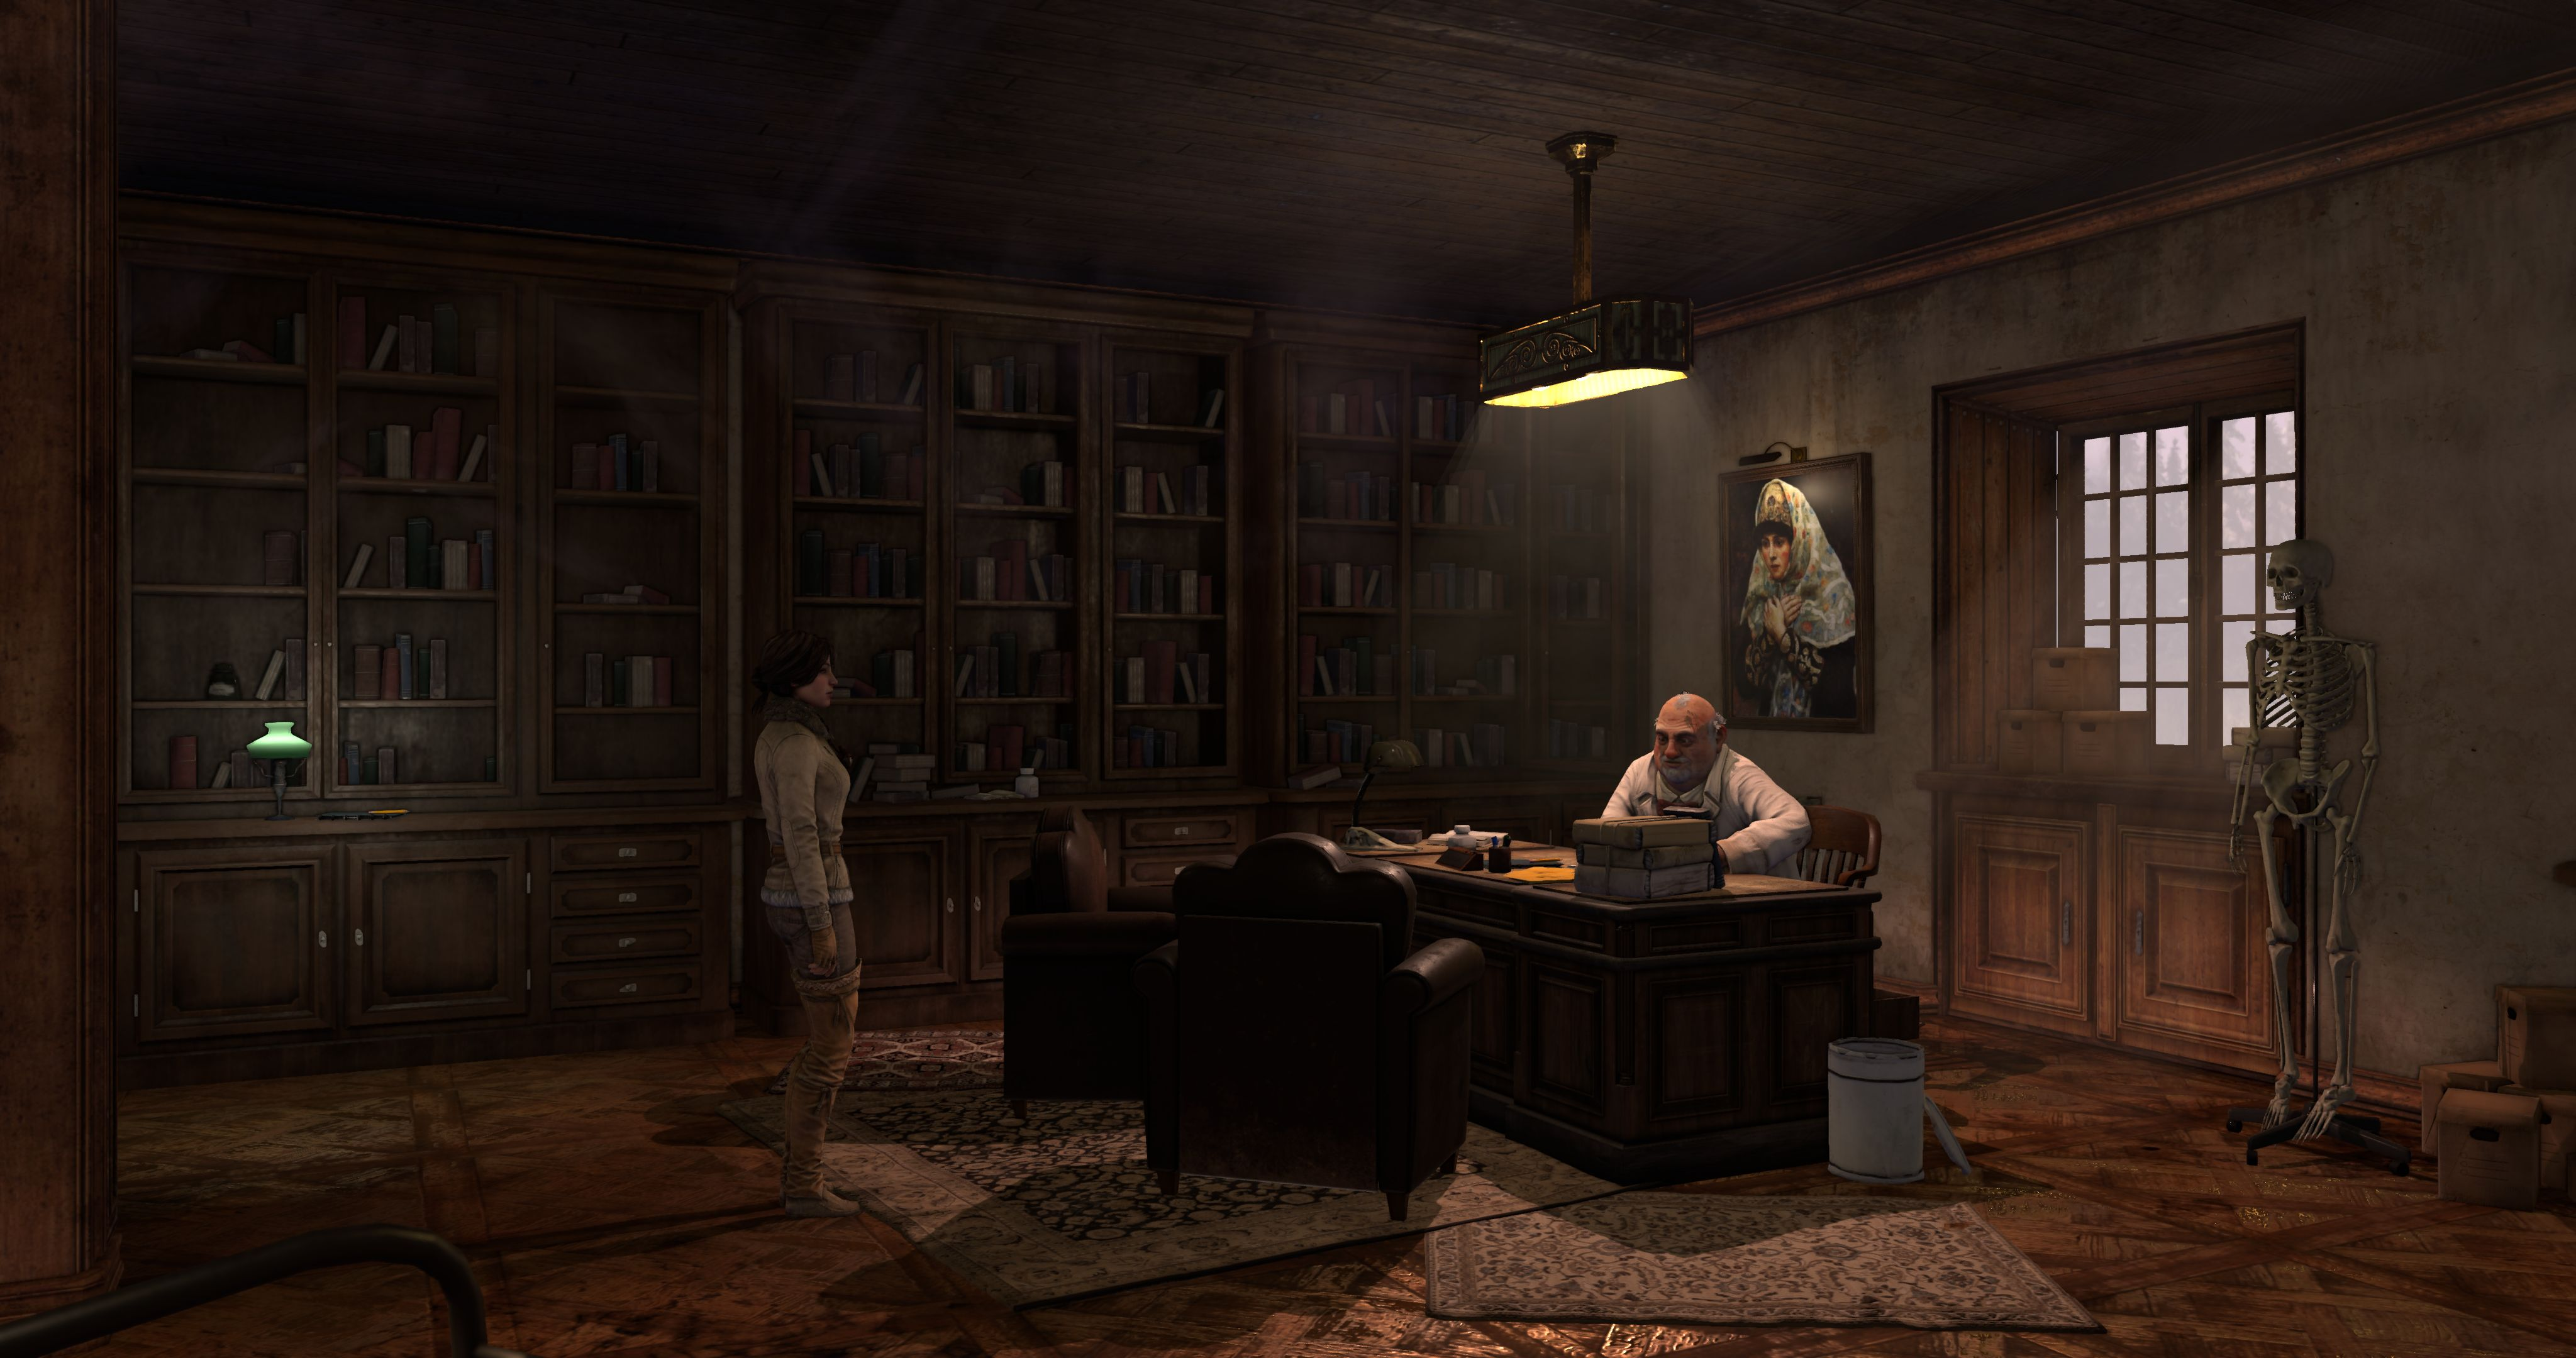 http://gamingway.fr/wp-content/uploads/2016/06/syberia-3-5.jpg